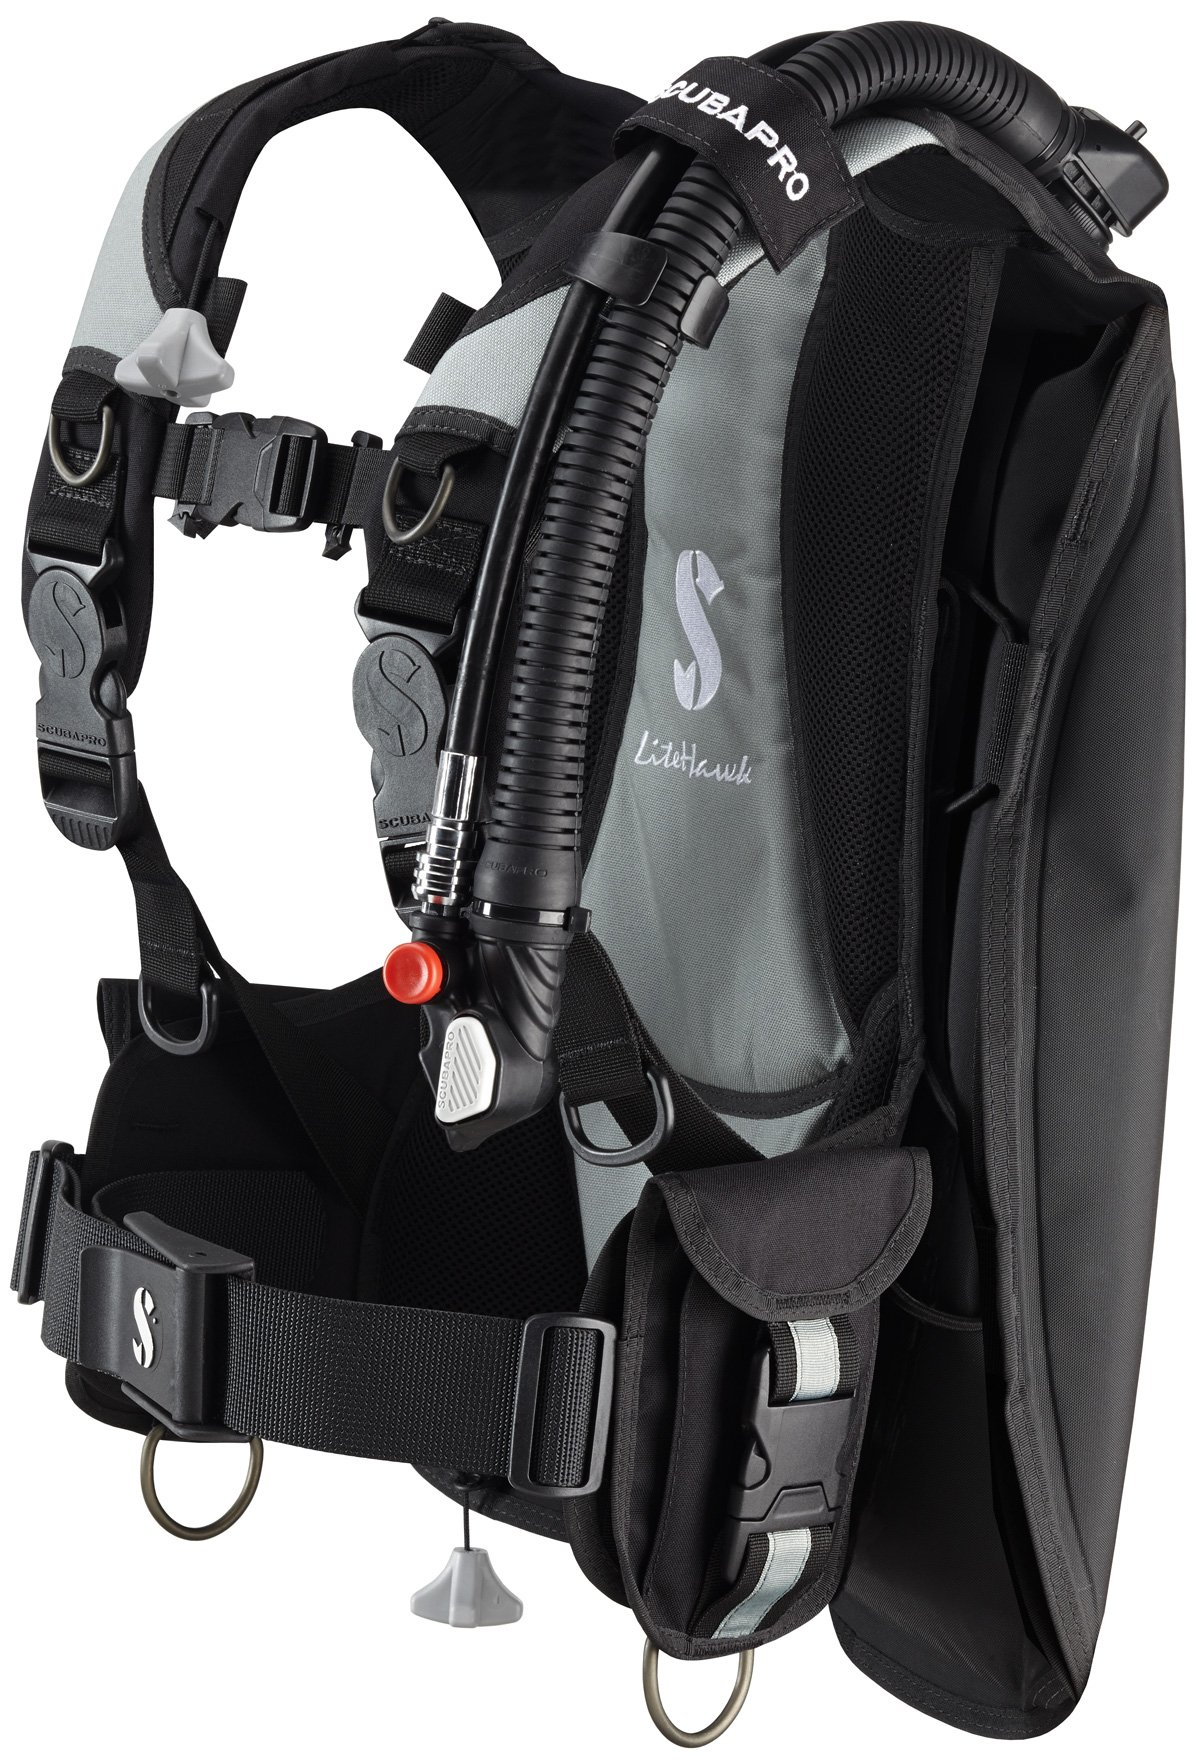 Scubapro Litehawk Scuba Diving BC with BPI - XLarge/2XLarge